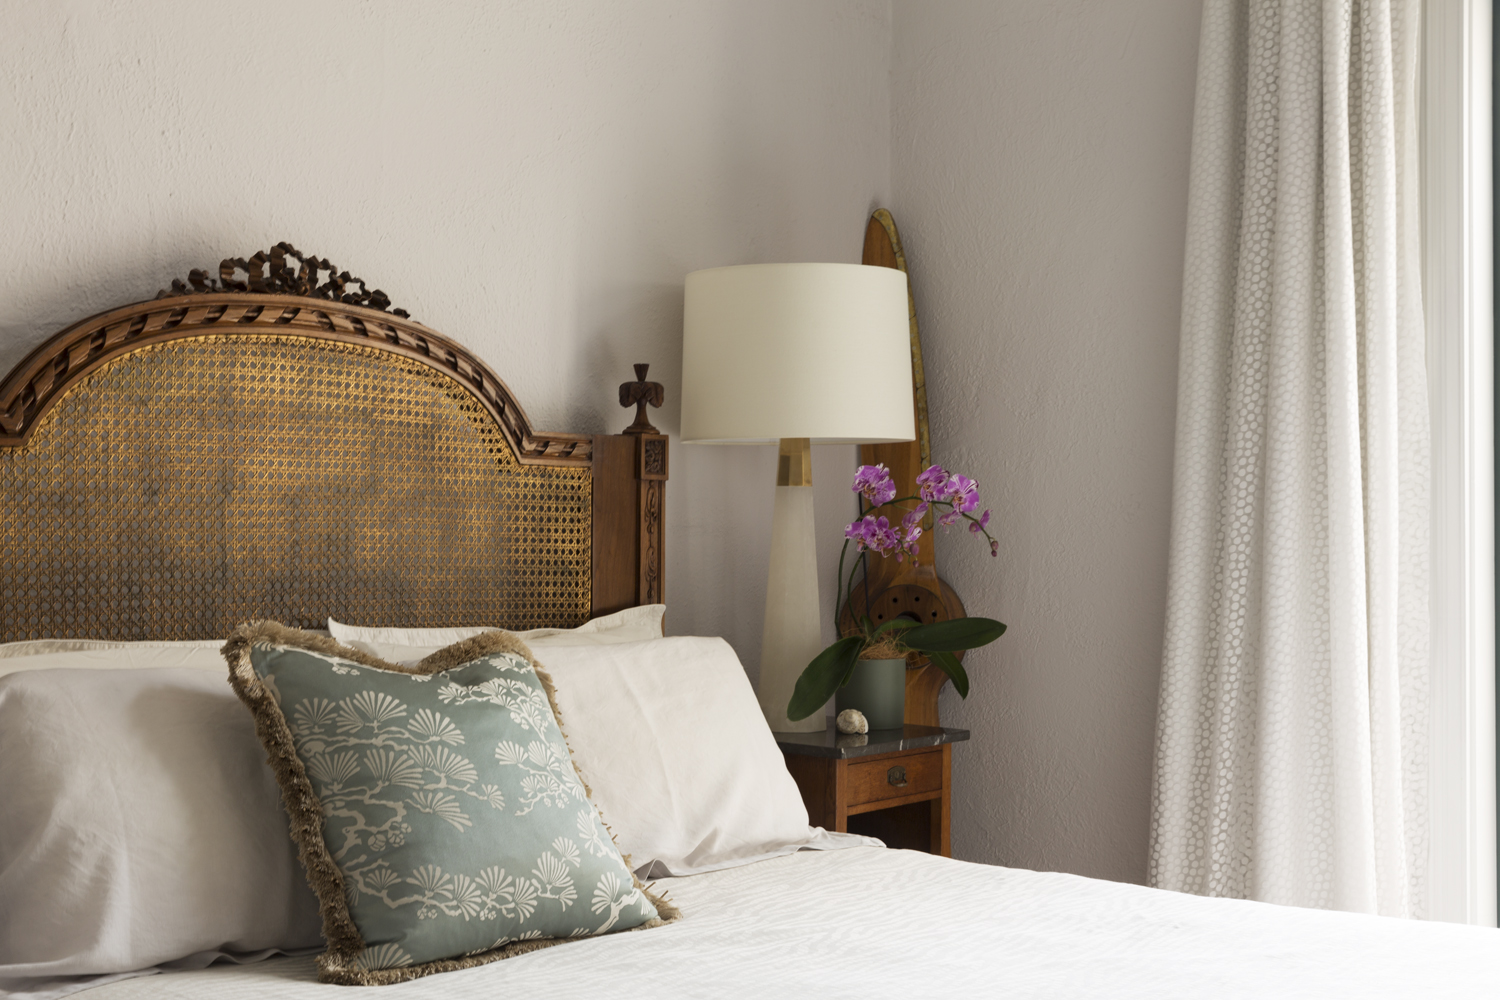 Clifton Hill house bedroom design by Melbourne interior designer Meredith Lee